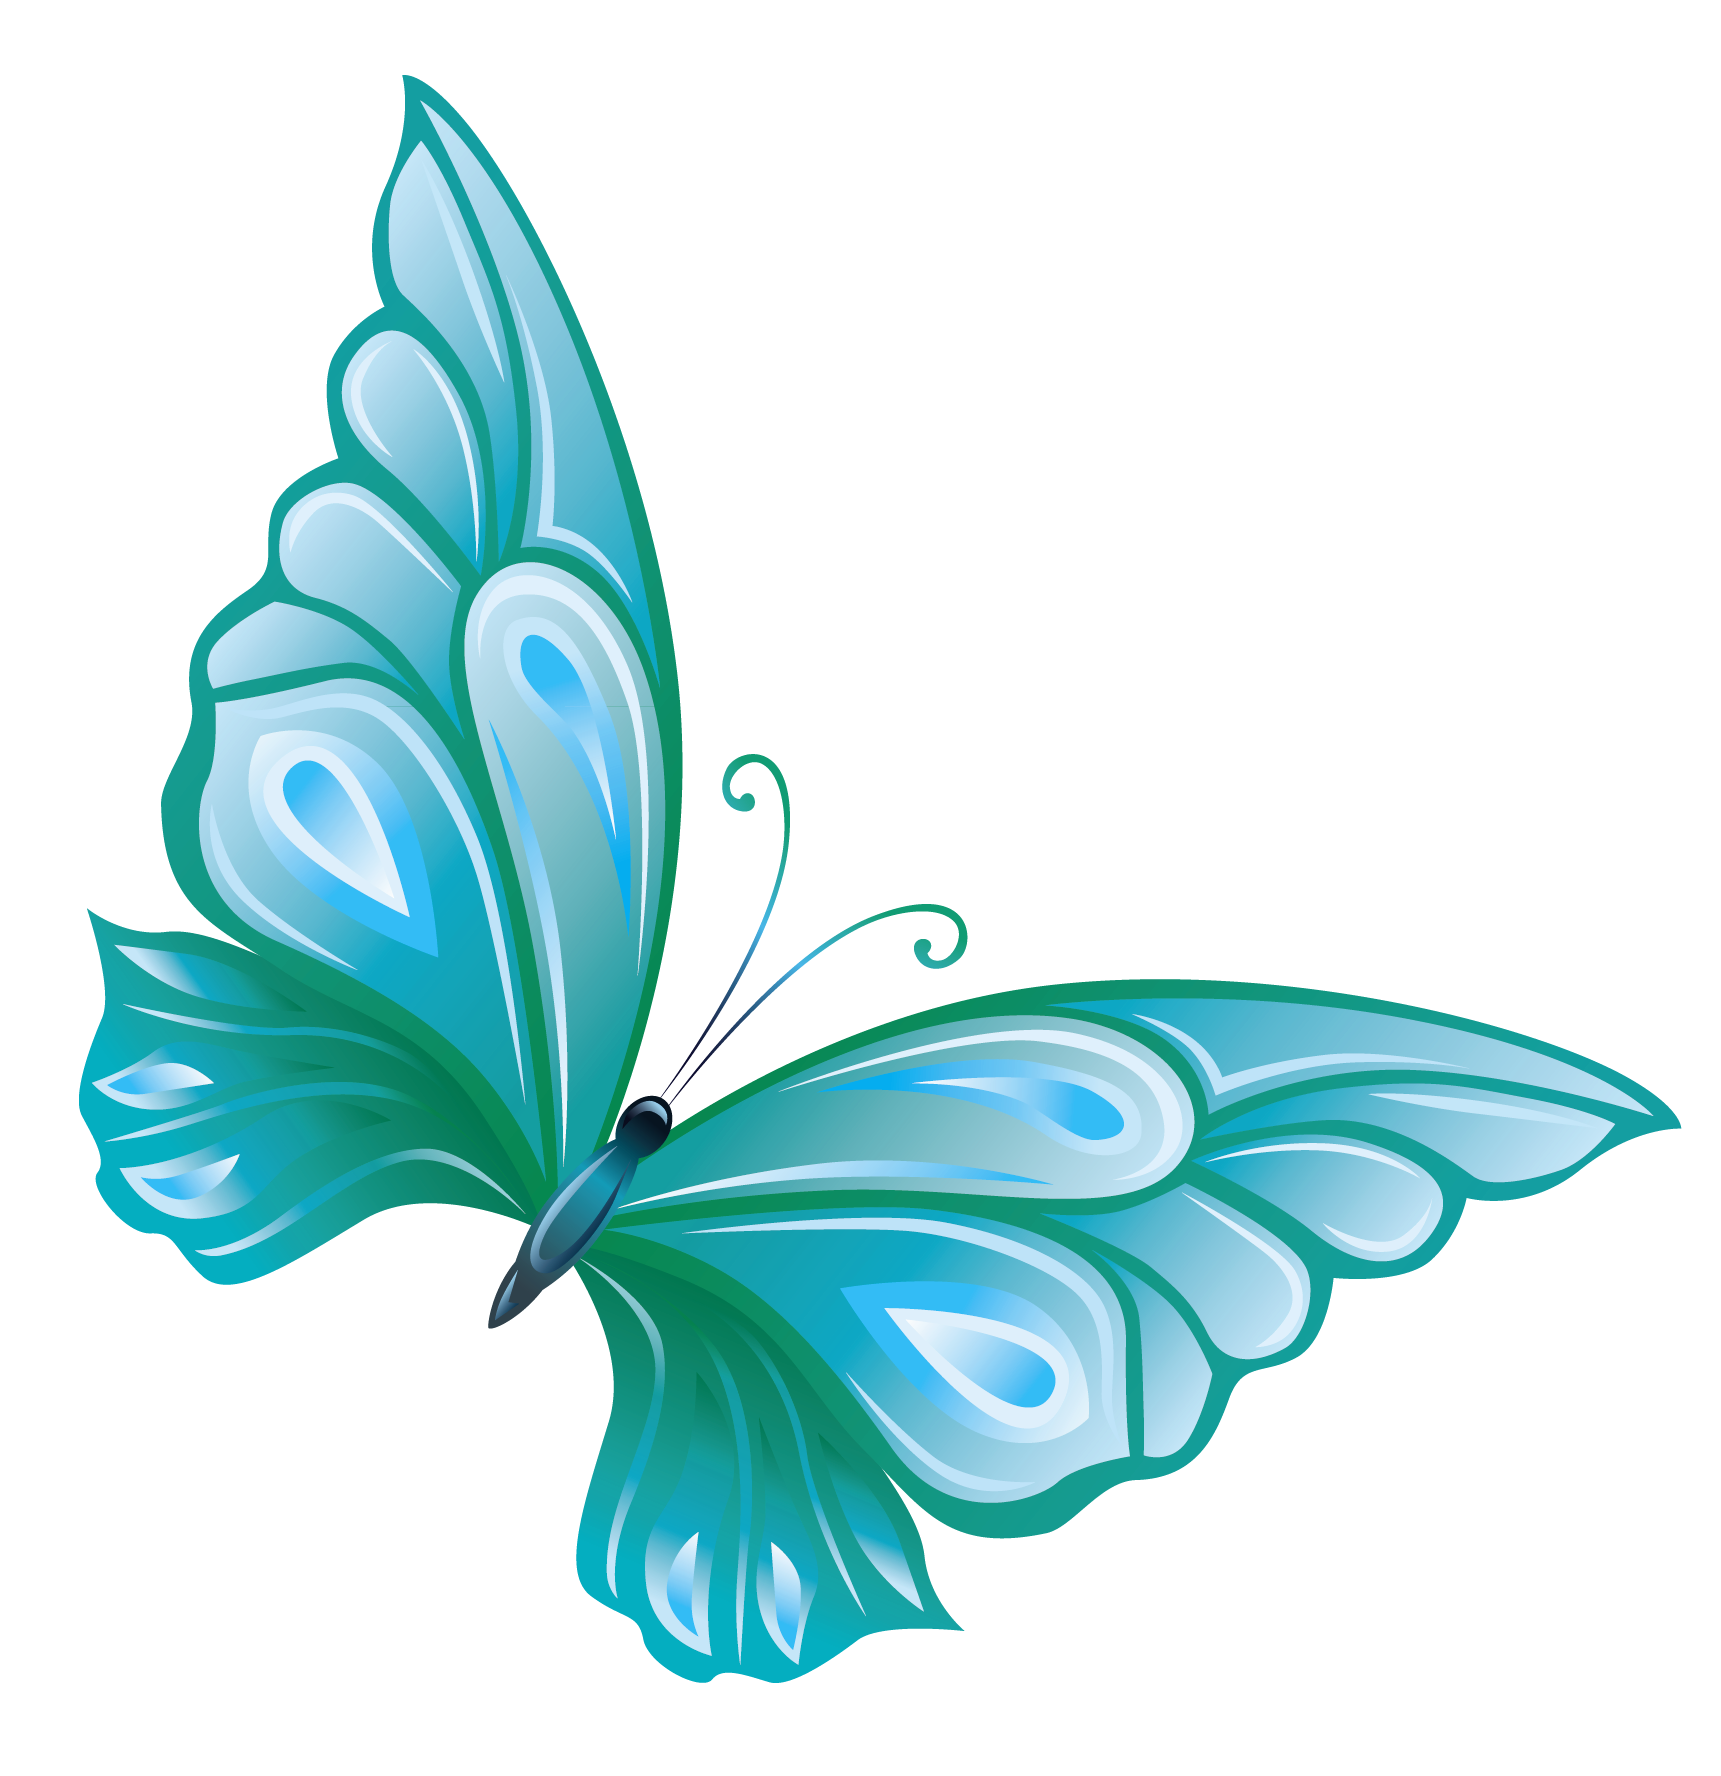 Clipart library. Butterfly clip art transparent background download